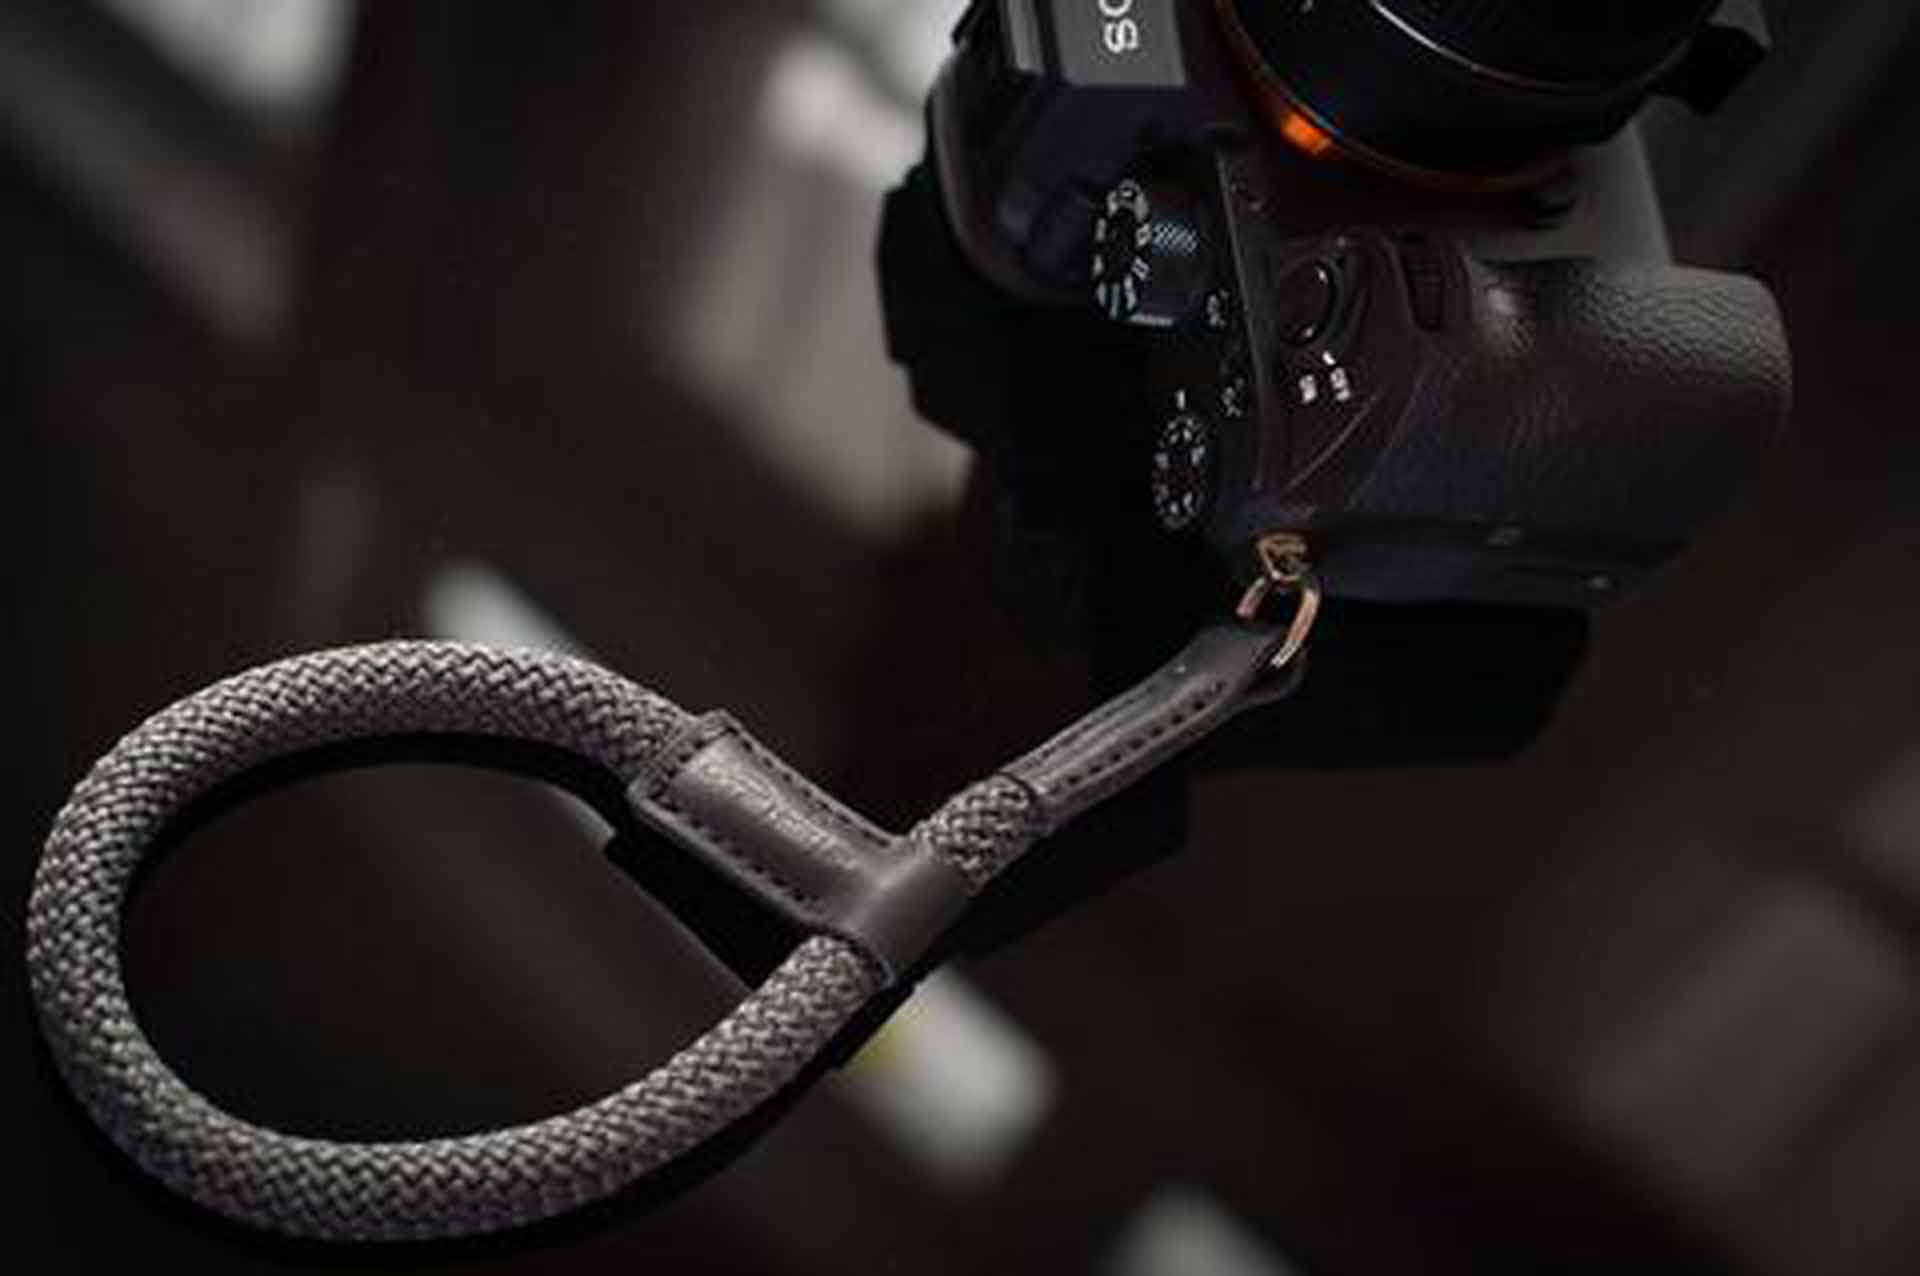 wrist straps, camera wrist strap, camera wrist straps, camera hand straps, best wrist straps, best camera wrist strap, best camera hand straps, dslr wrist strap, wrist straps for camera, best camera wrist strap, camera leather wrist strap, best camera wrist straps, dslr camera wrist strap, grey wrist strap